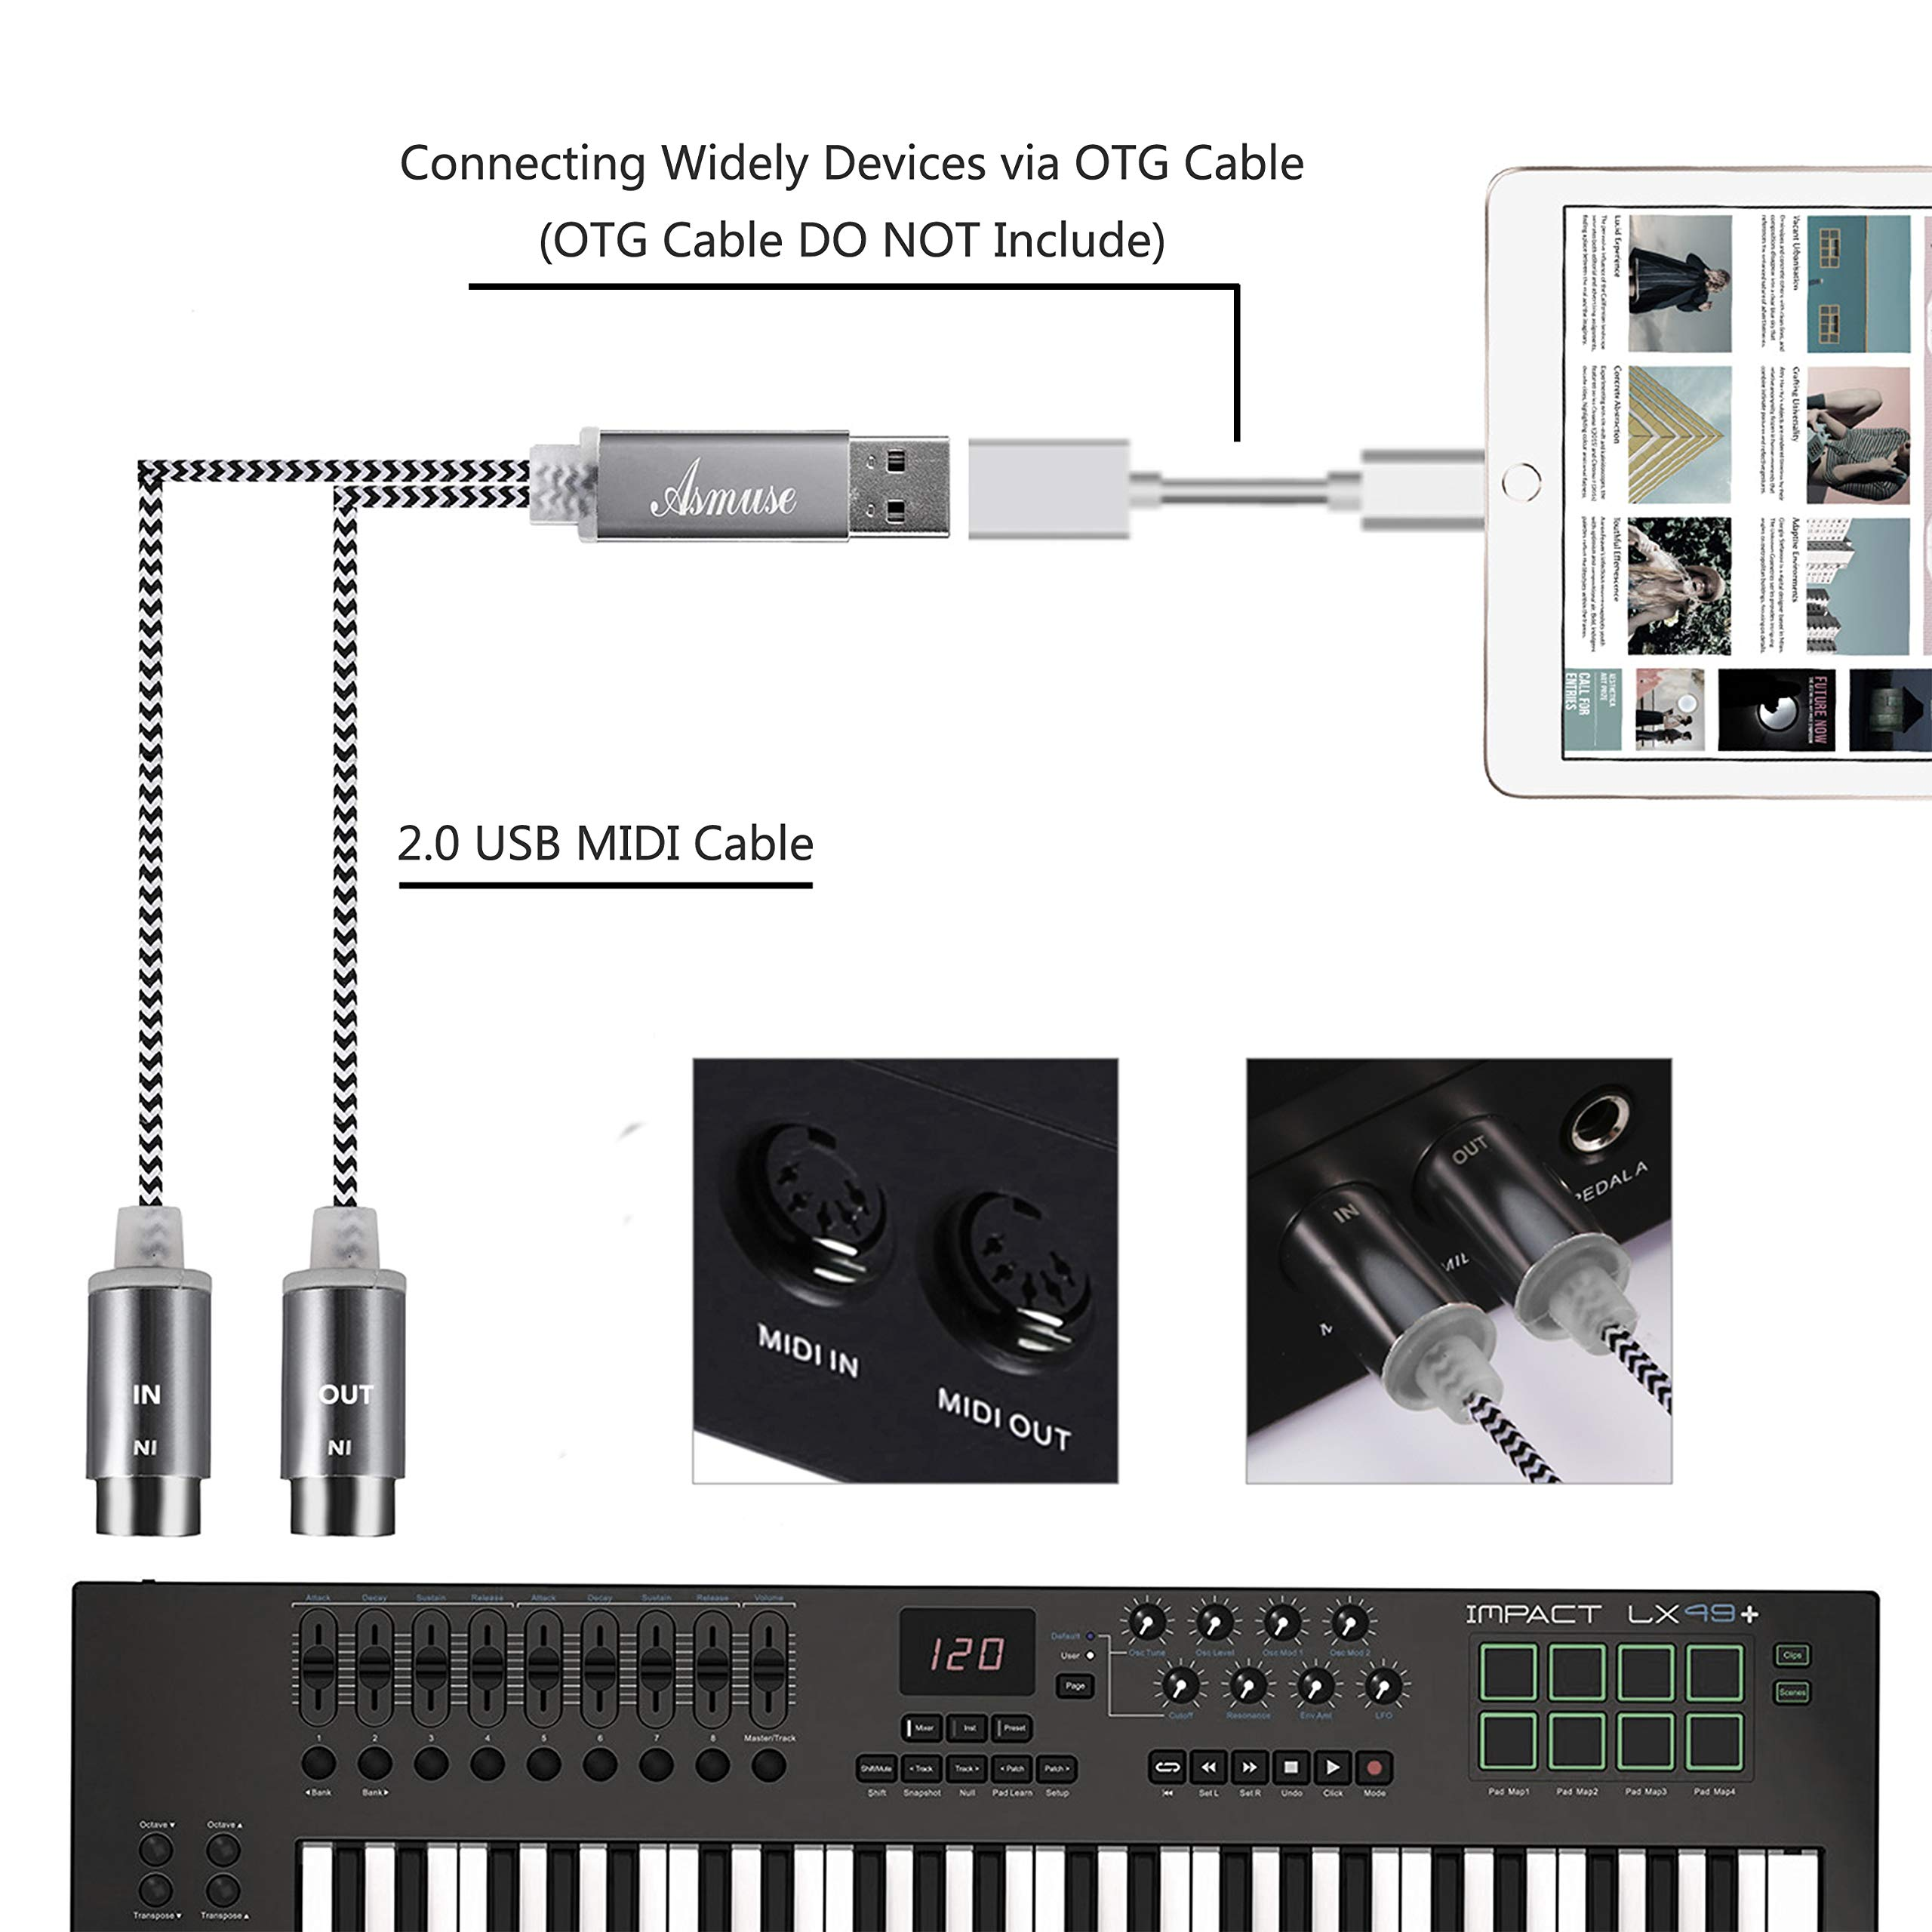 MIDI to USB Cable MIDI Interface Converter with LED Indicator Light and FTP Processing Chip for Electric Keyboard Piano to PC Mac Laptop 5-PIN DIN MIDI Cable(1.6M) by Asmuse (Image #6)